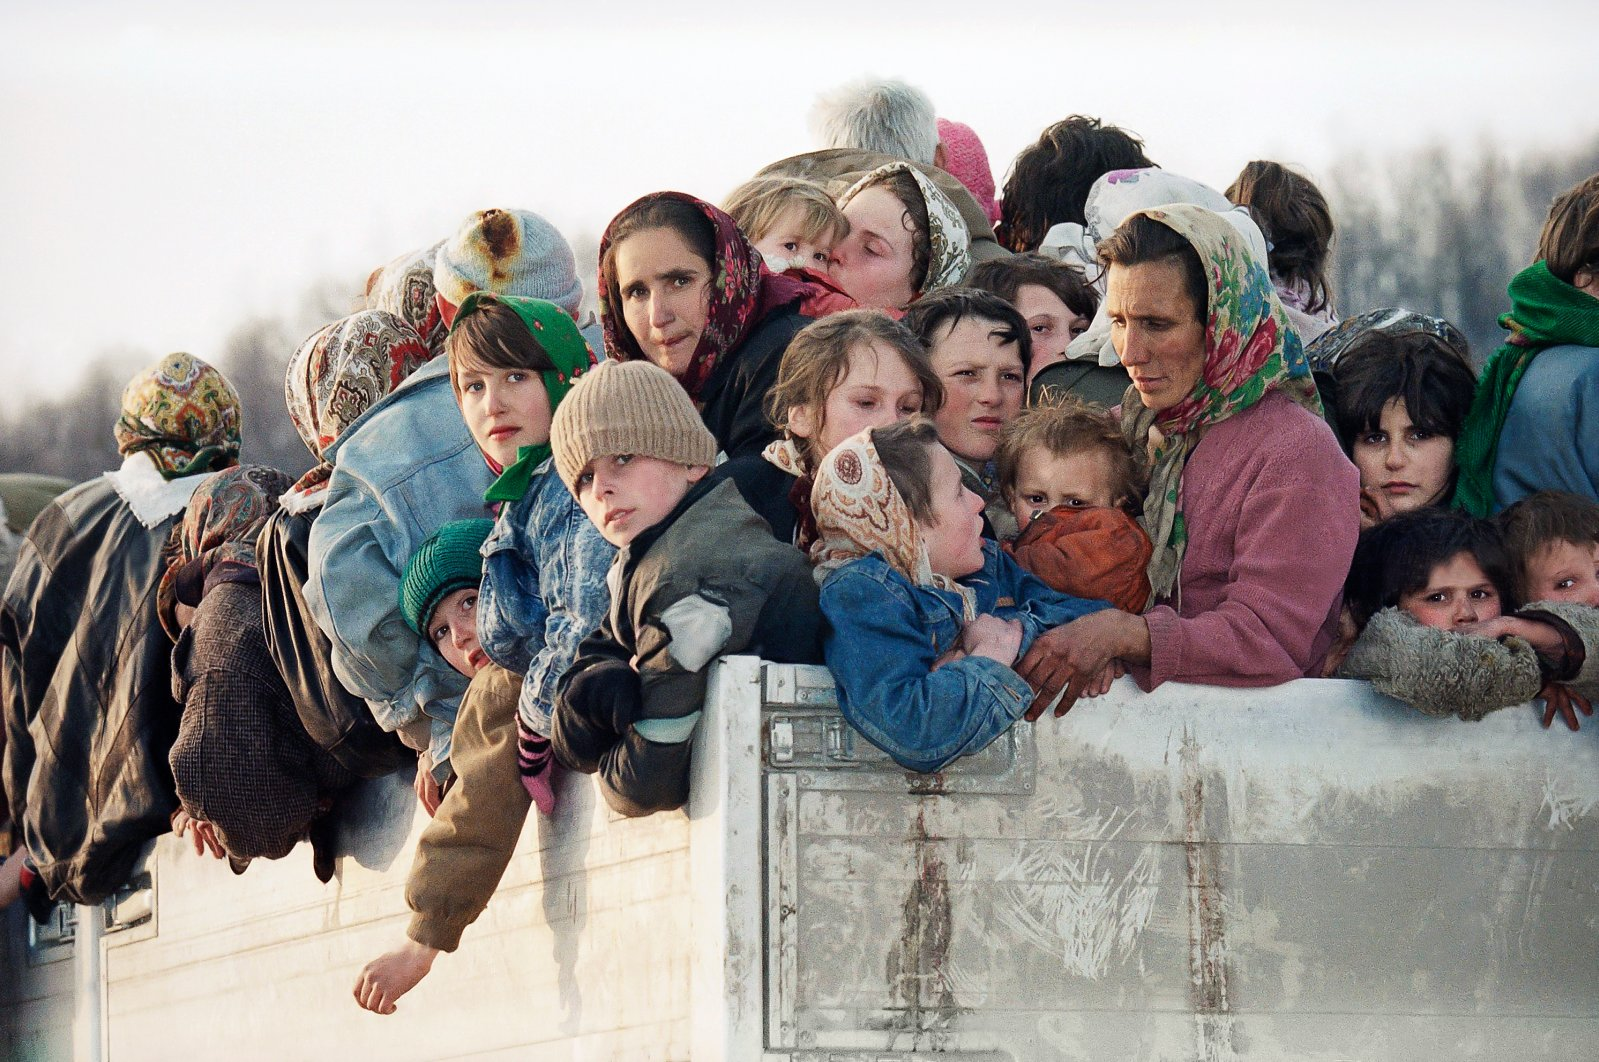 Evacuees from the besieged Muslim enclave of Srebrenica, packed on a truck en route to Bosnian city of Tuzla, pass through the Tojsici village, March 29, 1993. (AP Photo)